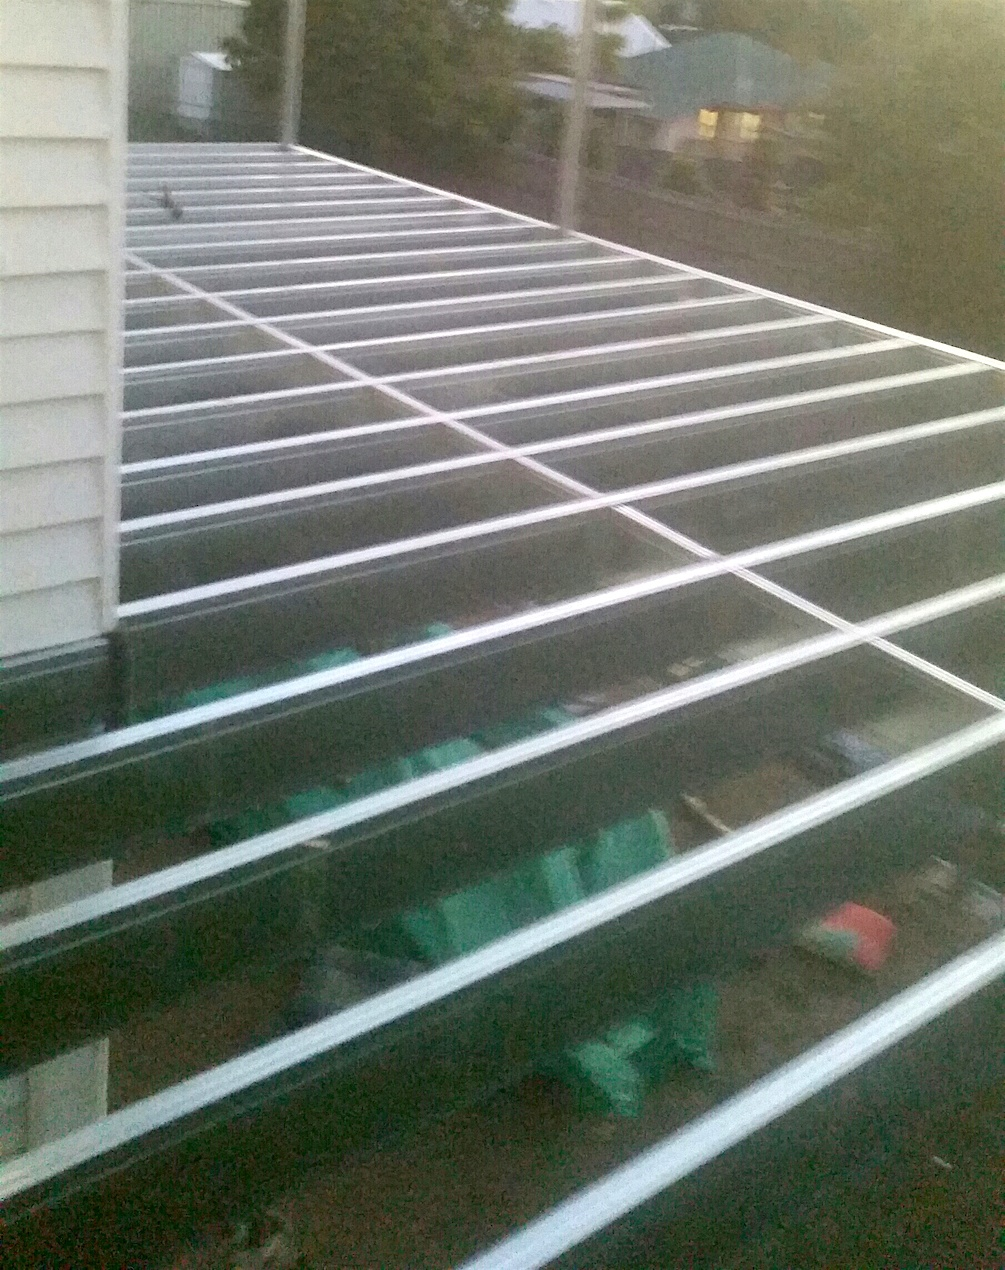 Boxspan deck frame complete and ready for the deck boards to be laid